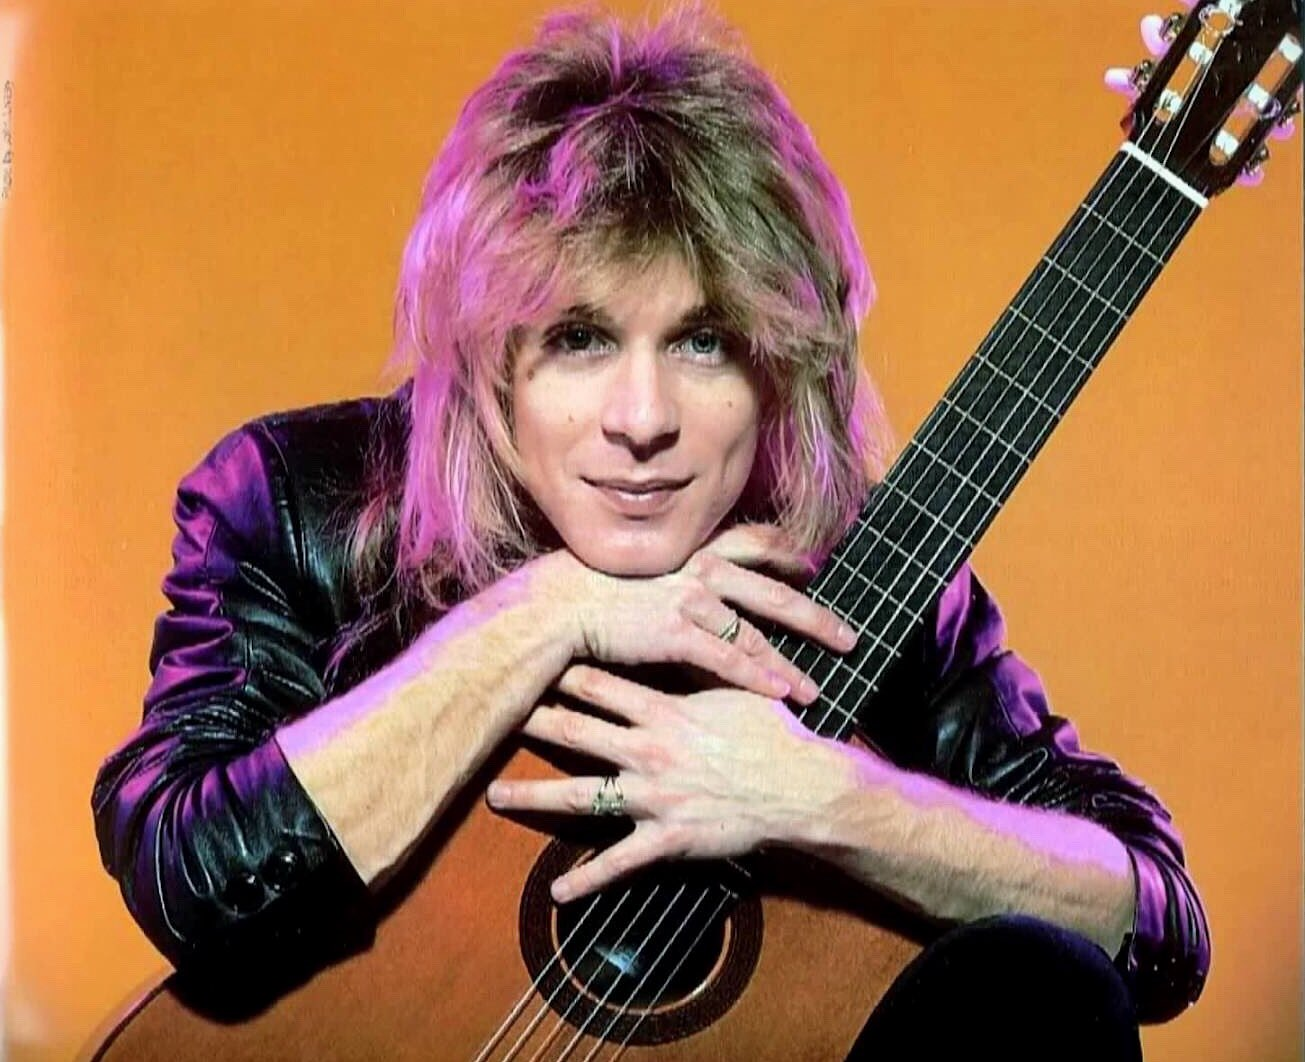 Randy Rhoads would have turned 61 today ... Happy Birthday